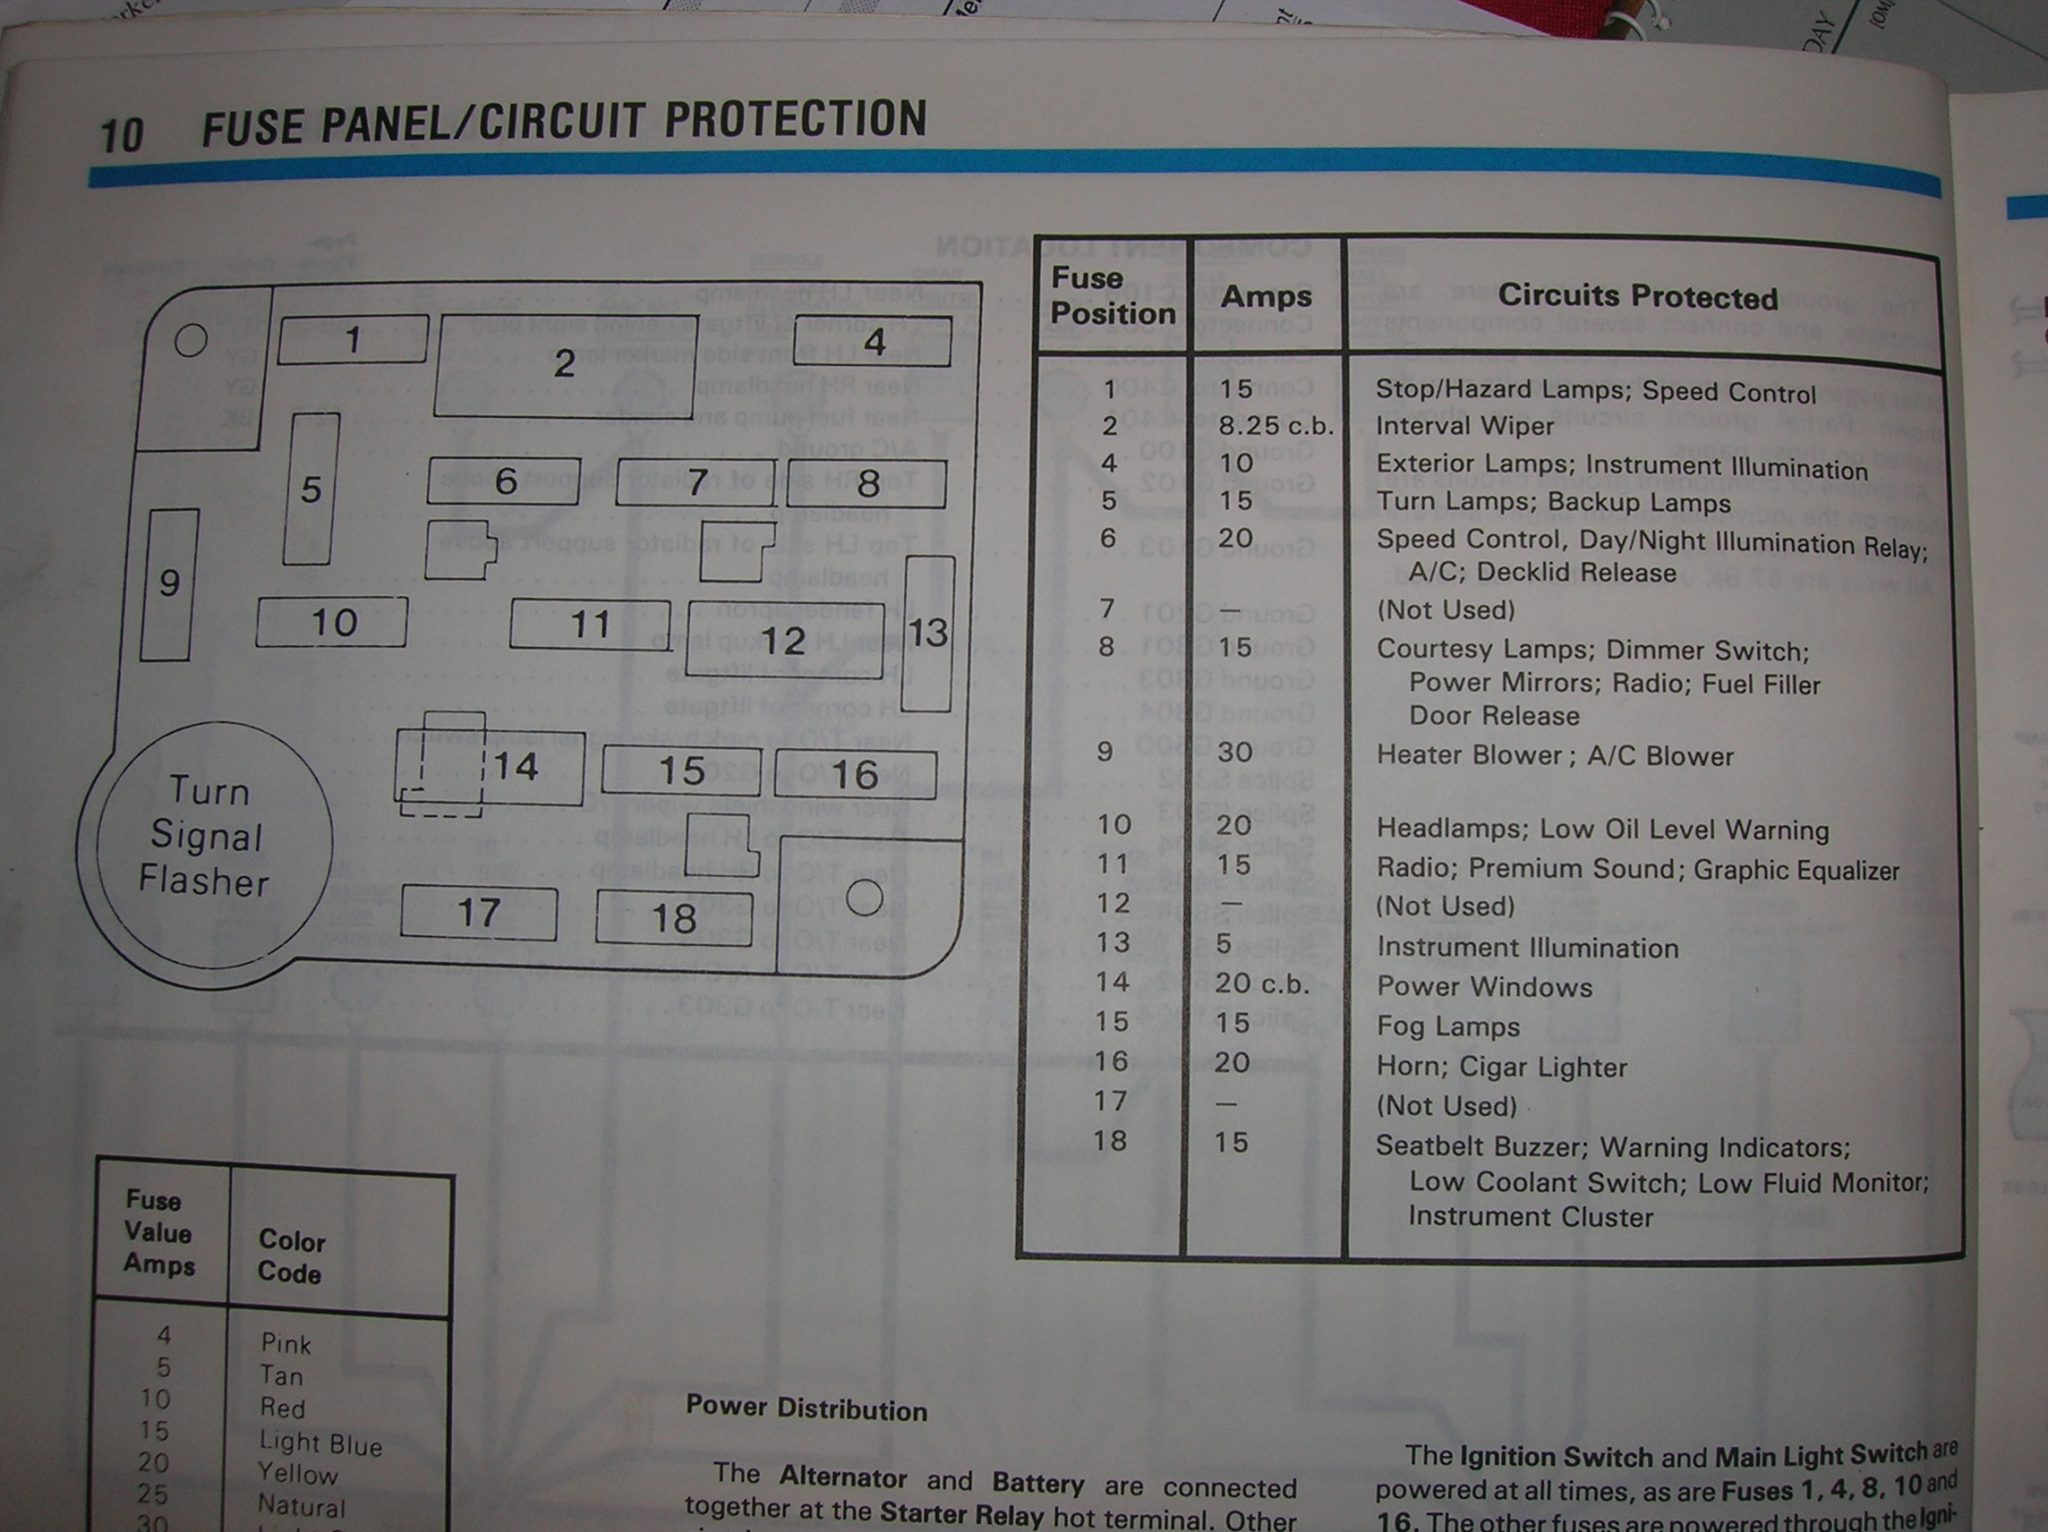 87 mustang fuse box dash 1987 mustang engine bay fuse box diagram 2014 ford mustang fuse box diagram at crackthecode.co